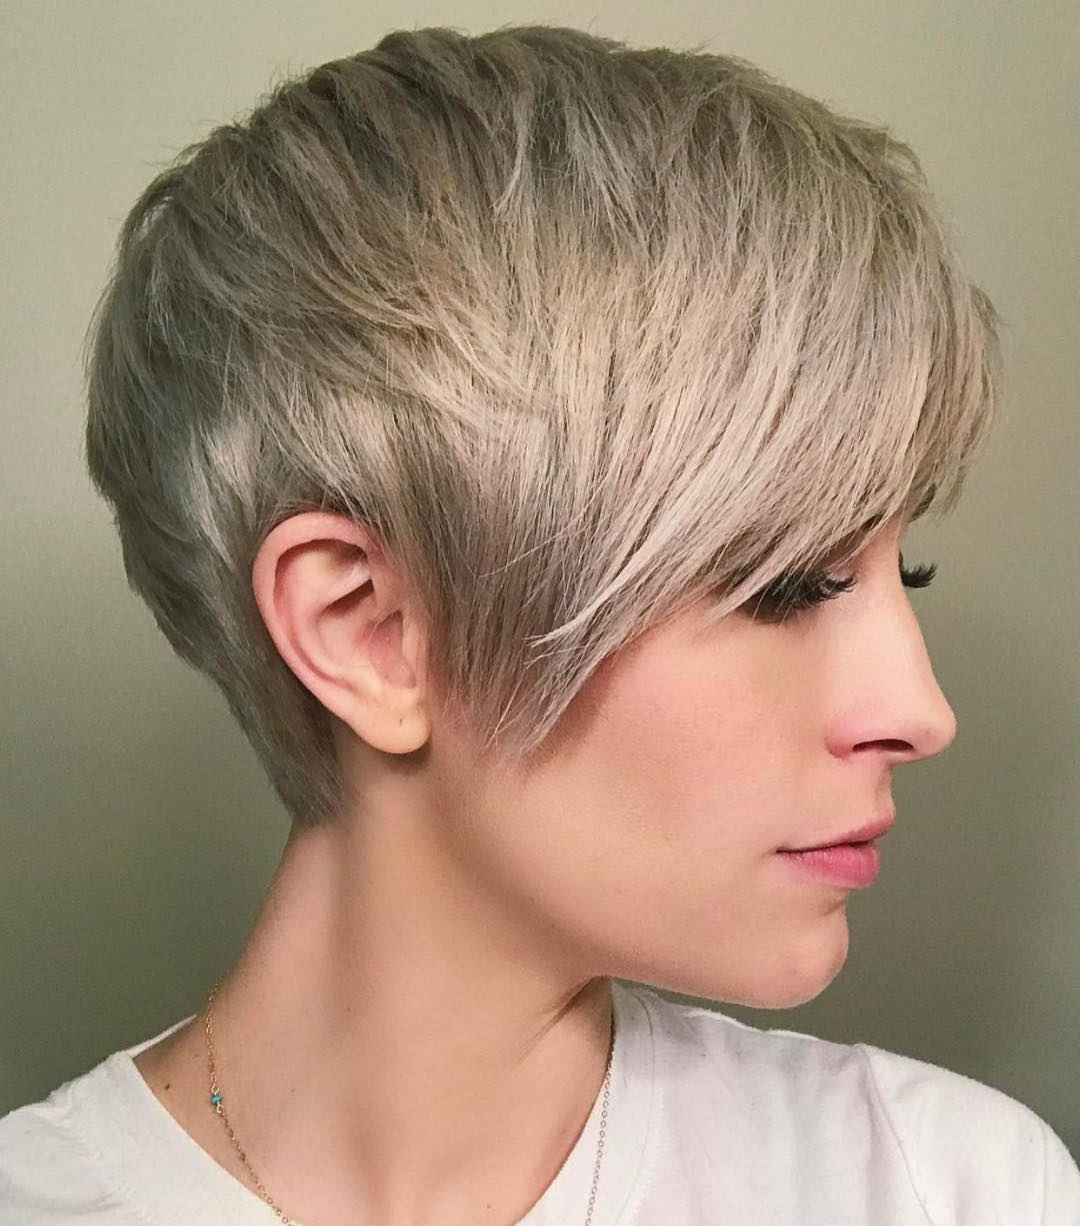 10 Best Short Straight Hairstyle Trends – Women Short Haircut Ideas 2018 Regarding Symmetrical Short Haircuts (View 3 of 25)